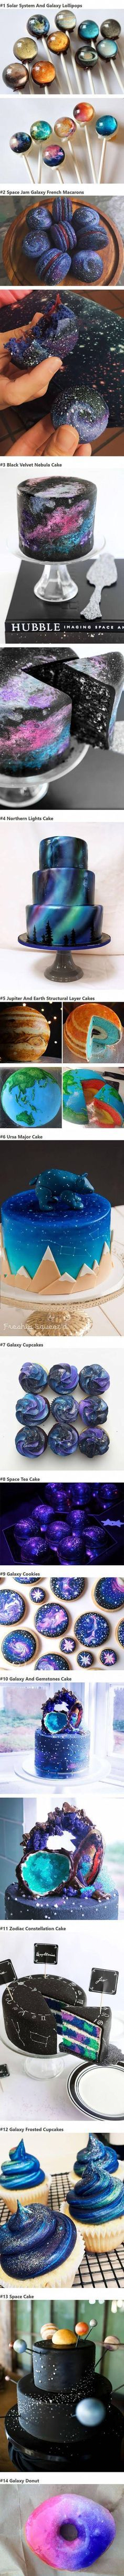 Galaxy Inspired Desserts And Sweets That Are Out Of This World